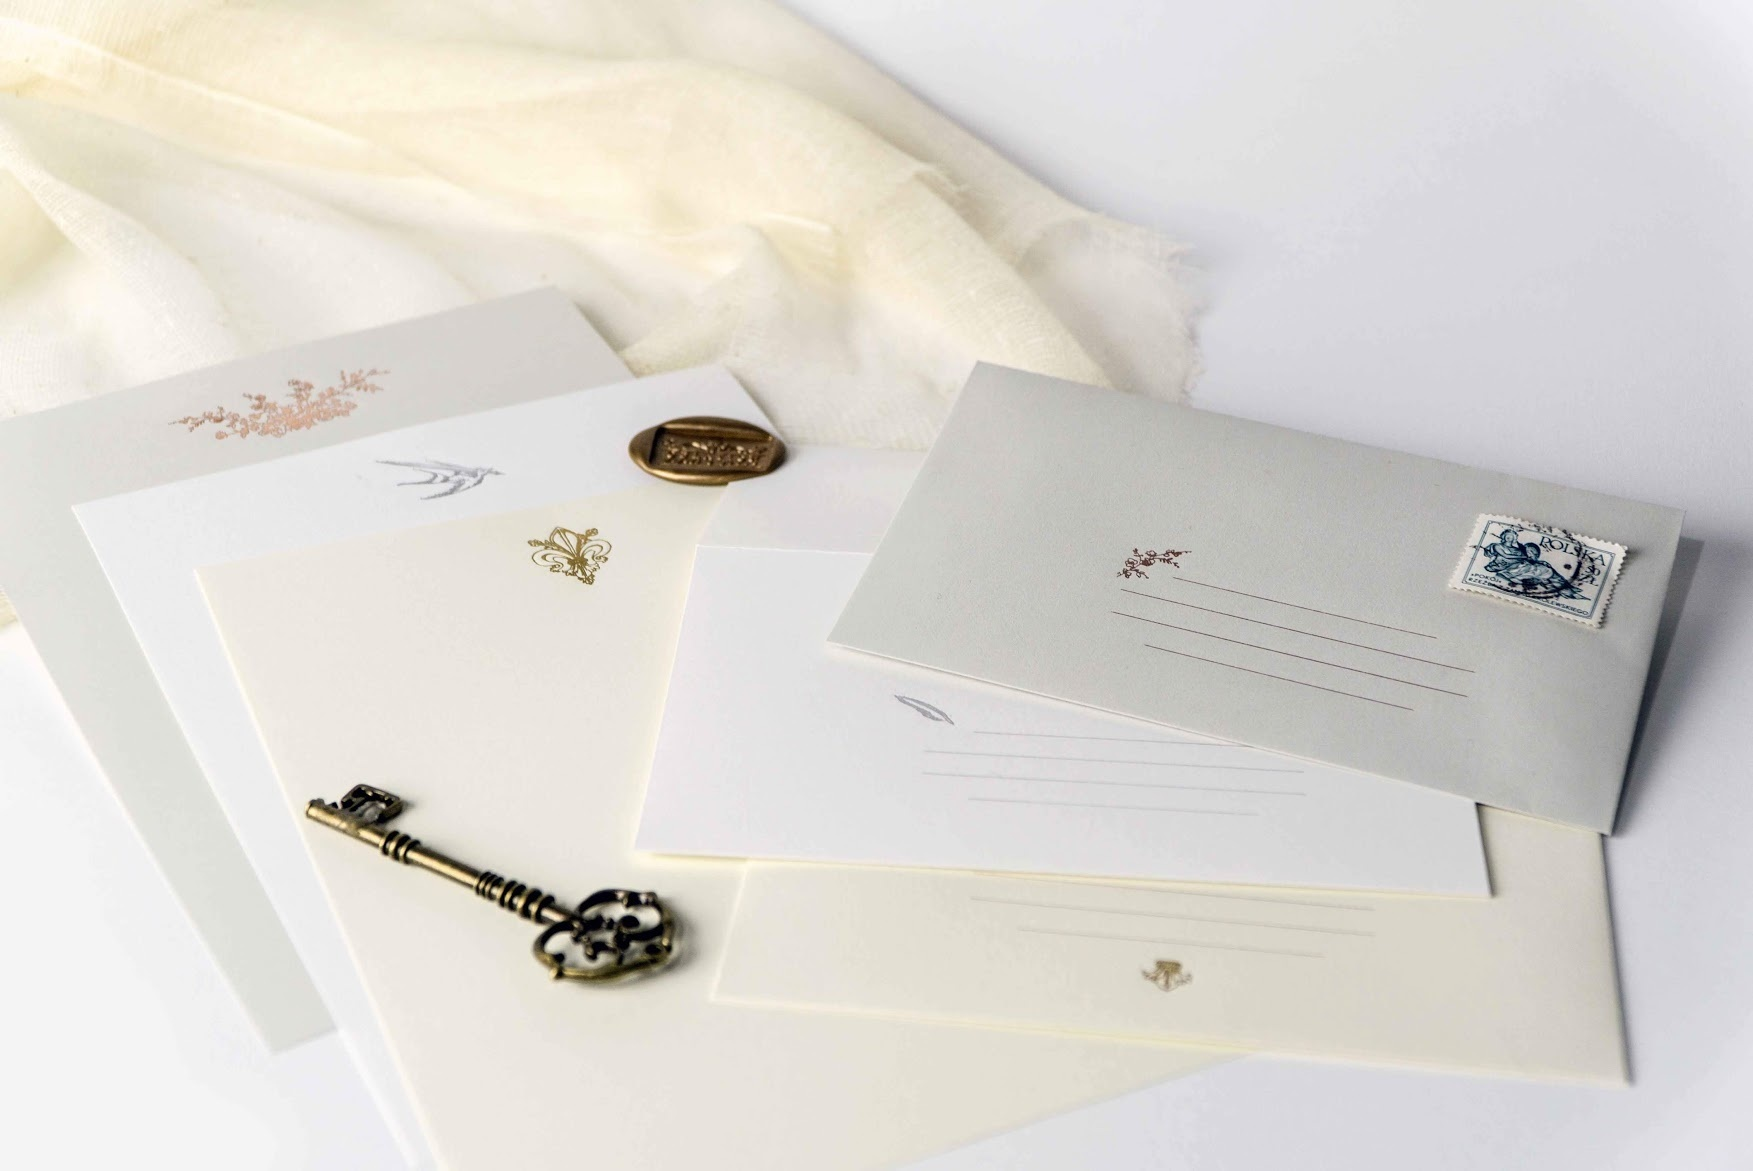 A Time for Handwritten Notes and Other Niceties